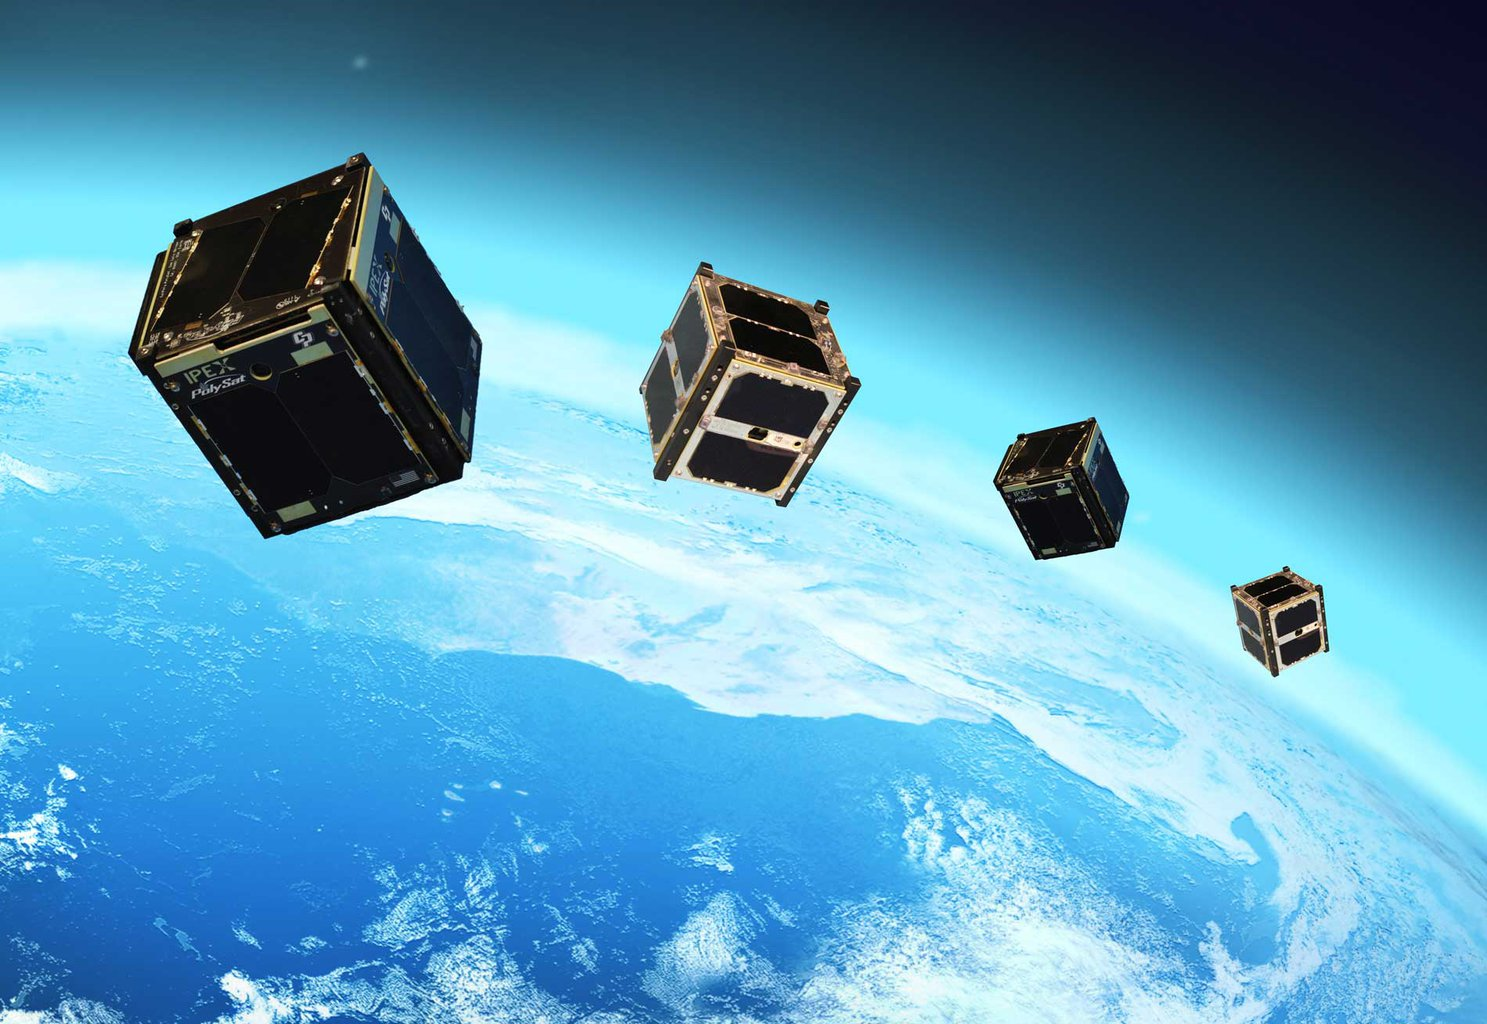 CubeSat splash image for topic page